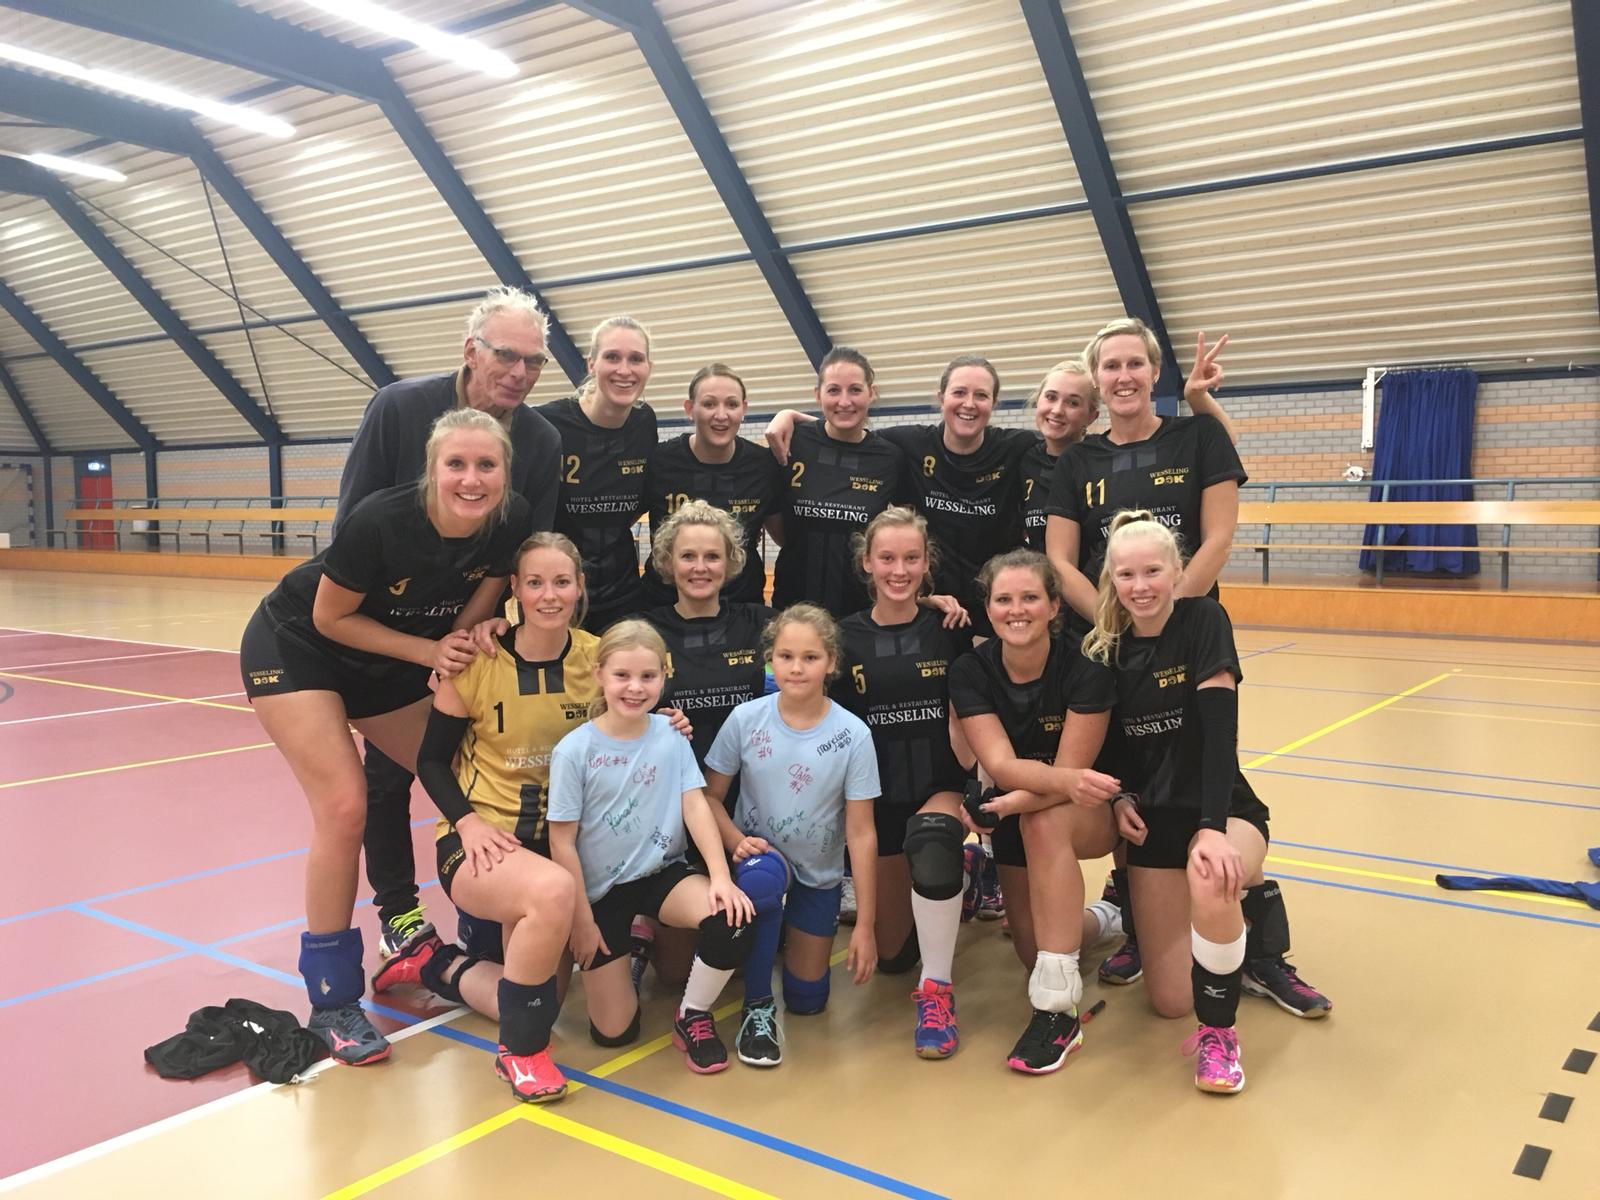 https://www.volleybal-dok.nl/wp-content/uploads/2018/11/WhatsApp-Image-2018-11-08-at-21.22.10.jpeg